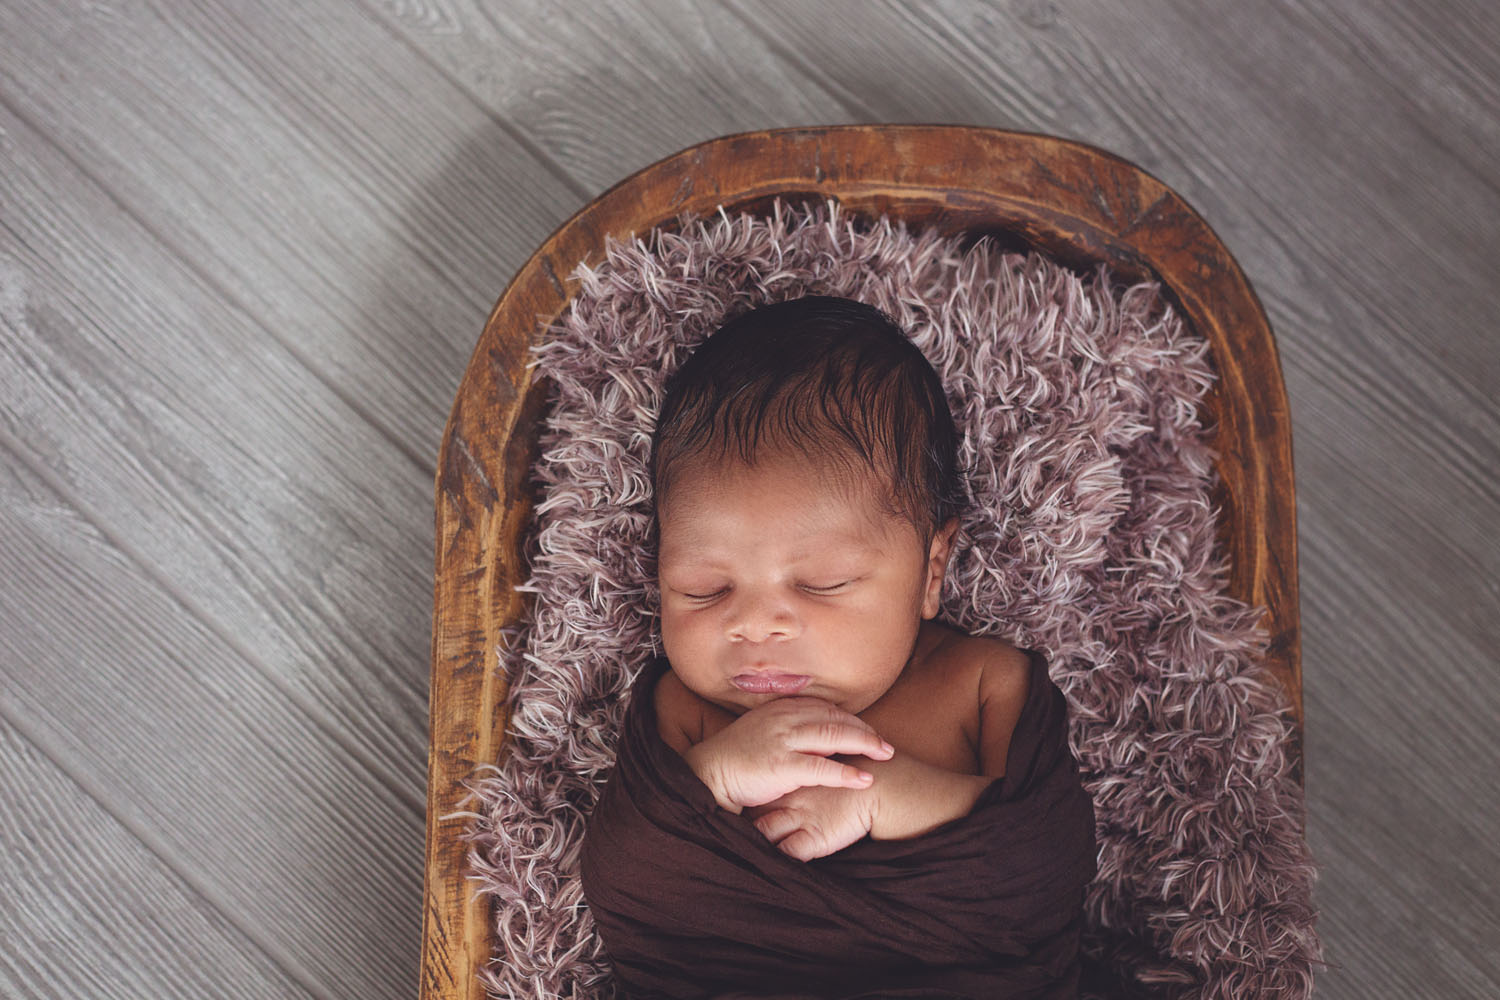 newborn photography in new jersey of a baby boy sleeping in a wood basket